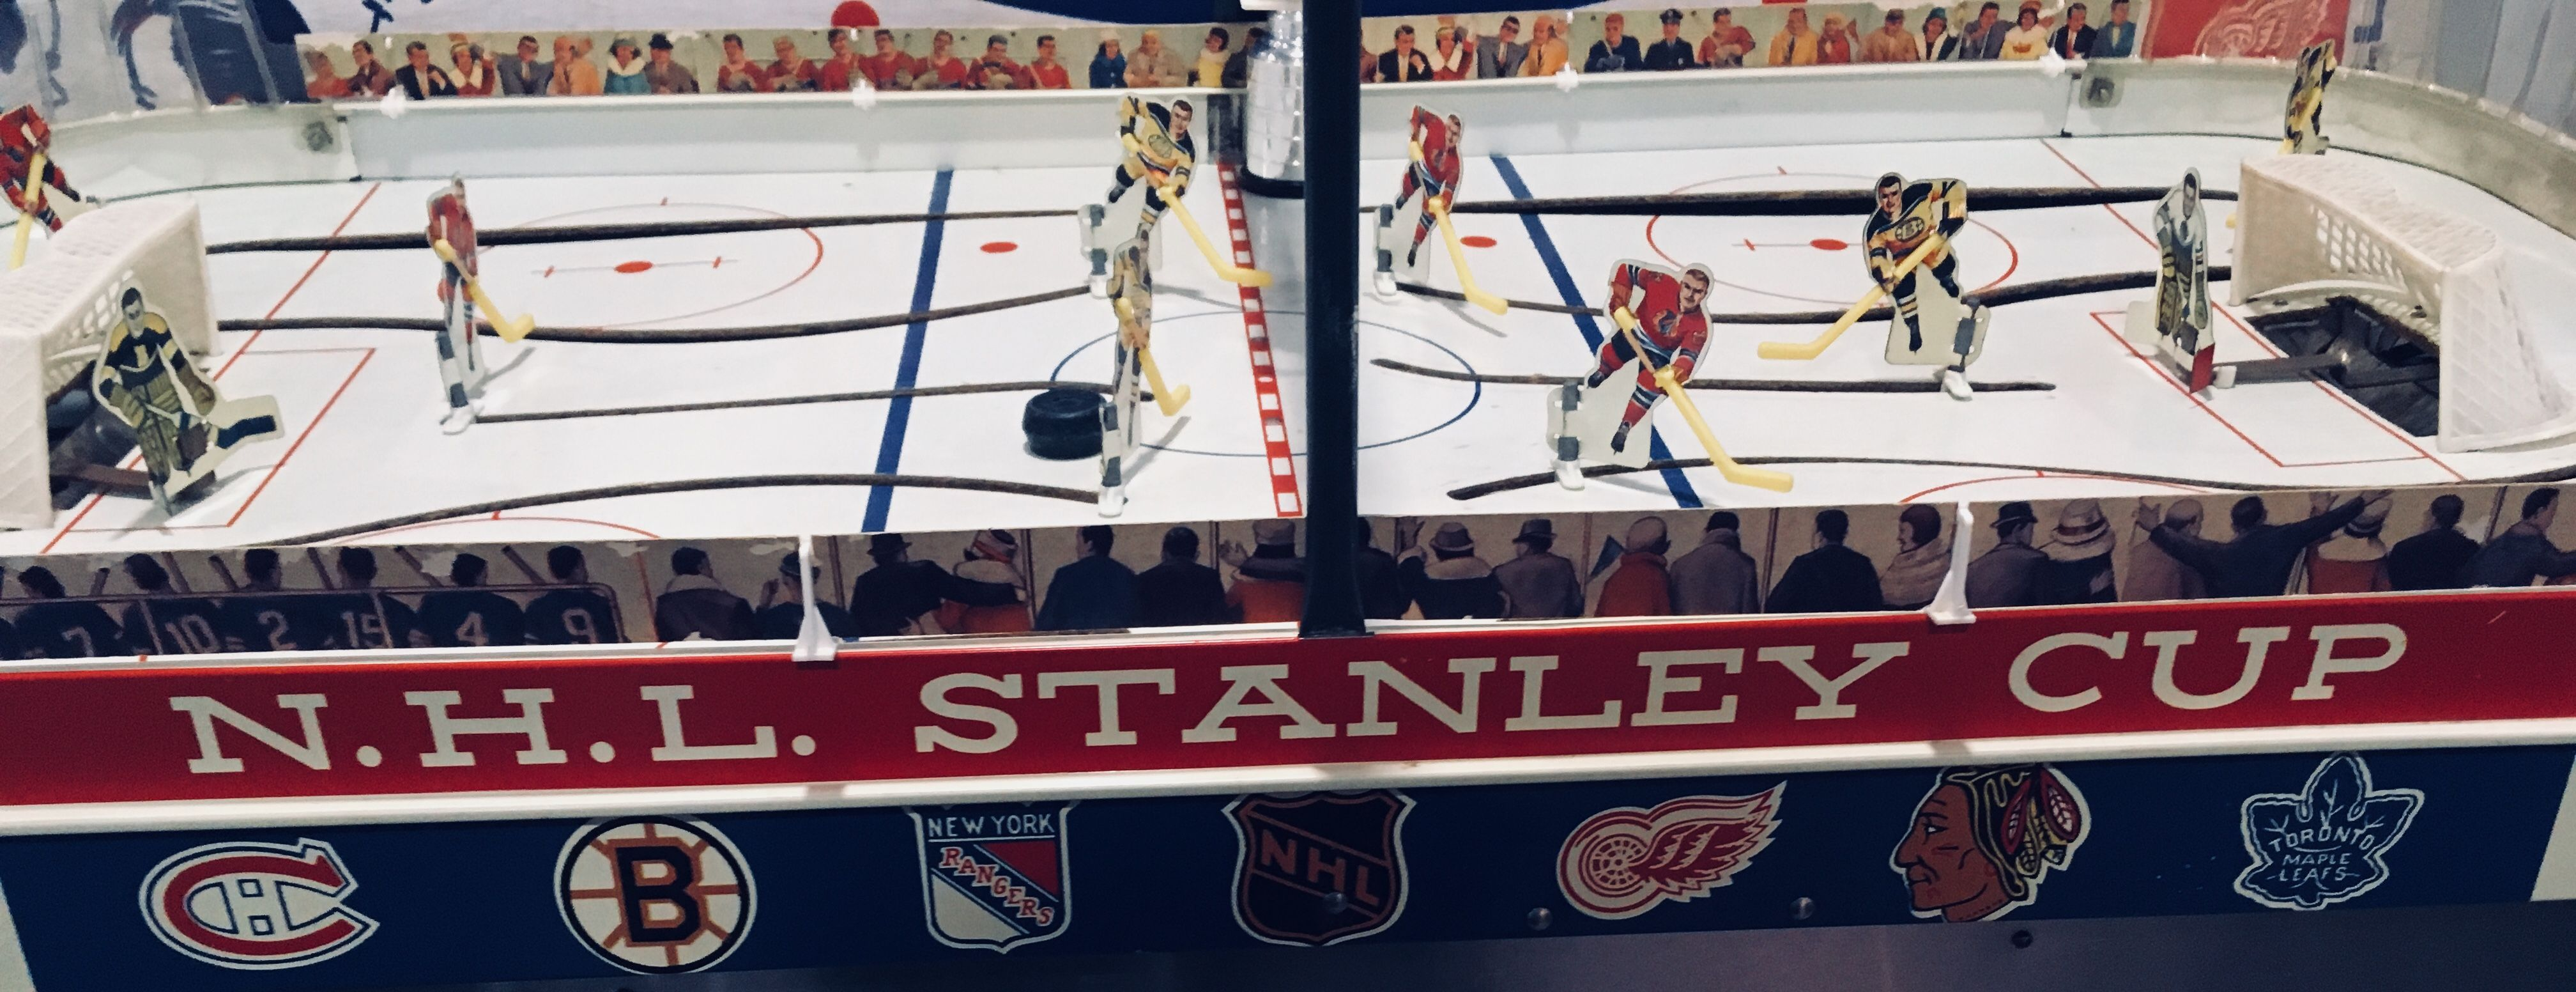 1960s Era Eagle Stanley Cup Table Hockey Game Hockey Games Hockey Stanley Cup